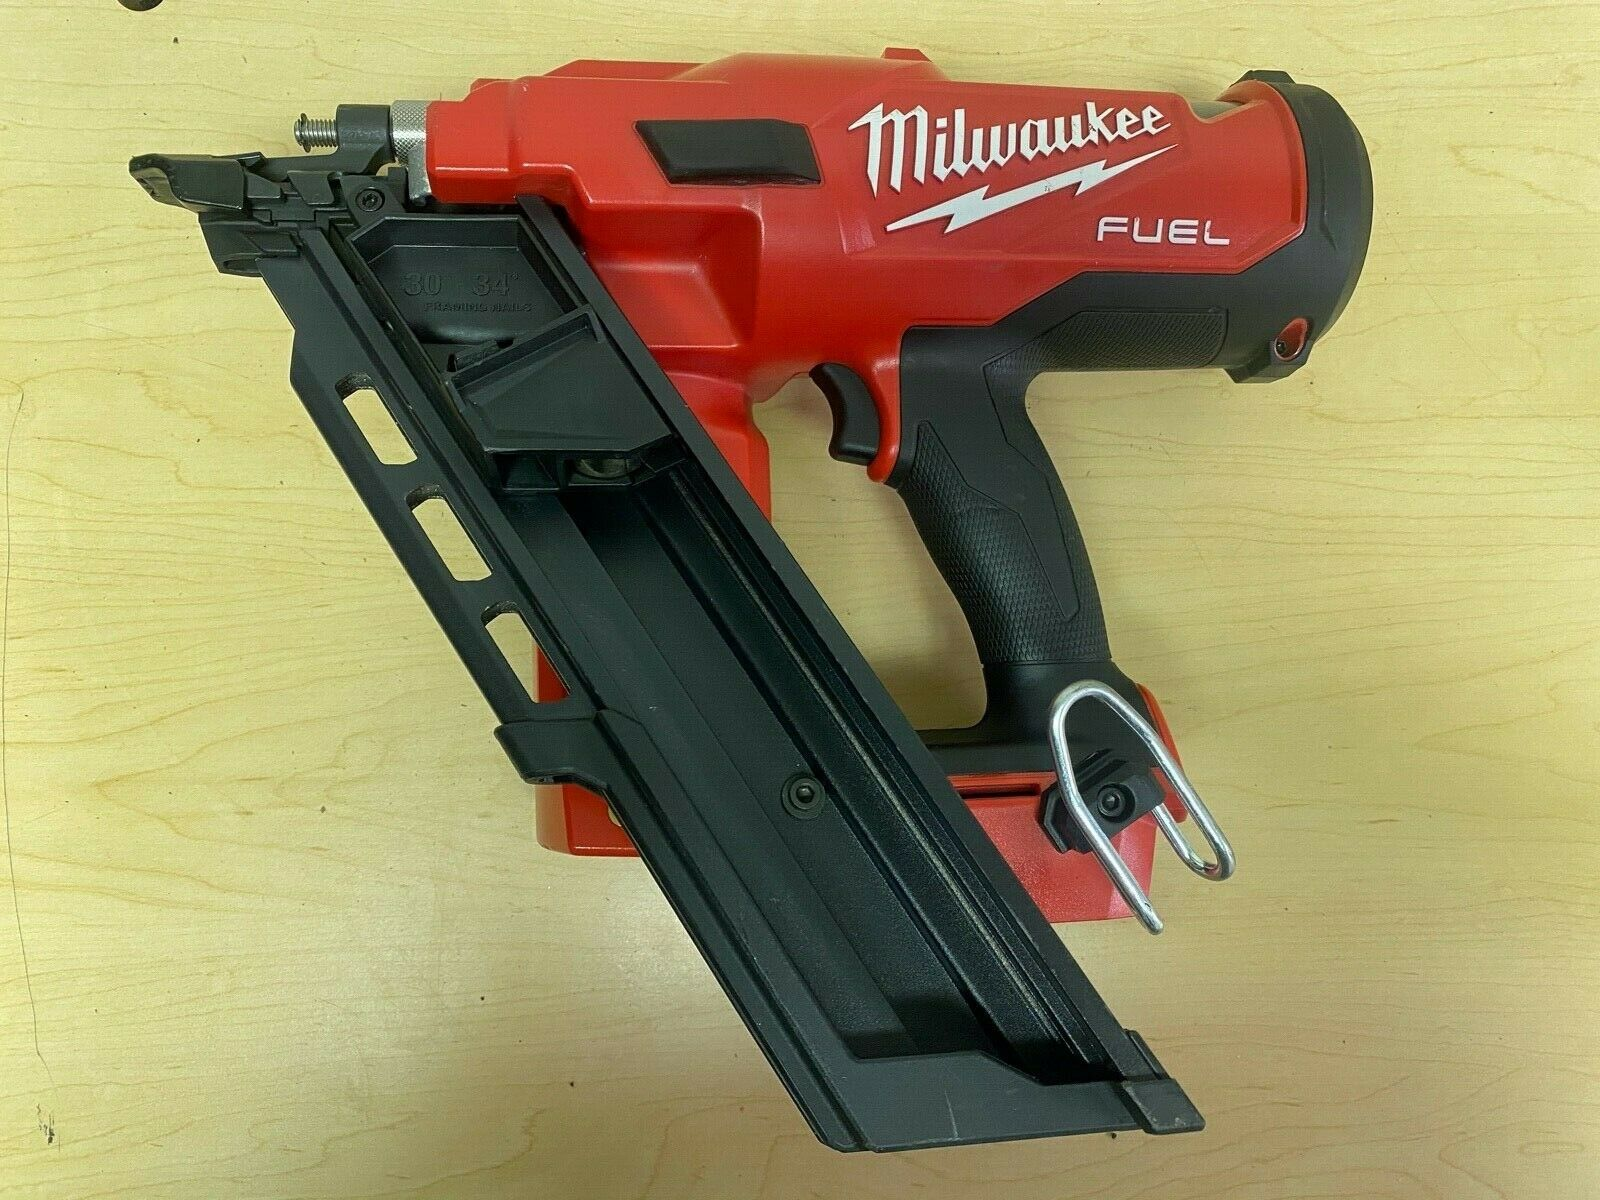 Milwaukee 2745-20 M18 FUEL 30 Degree Cordless Framing Nailer (Tool Only). Available Now for 284.99